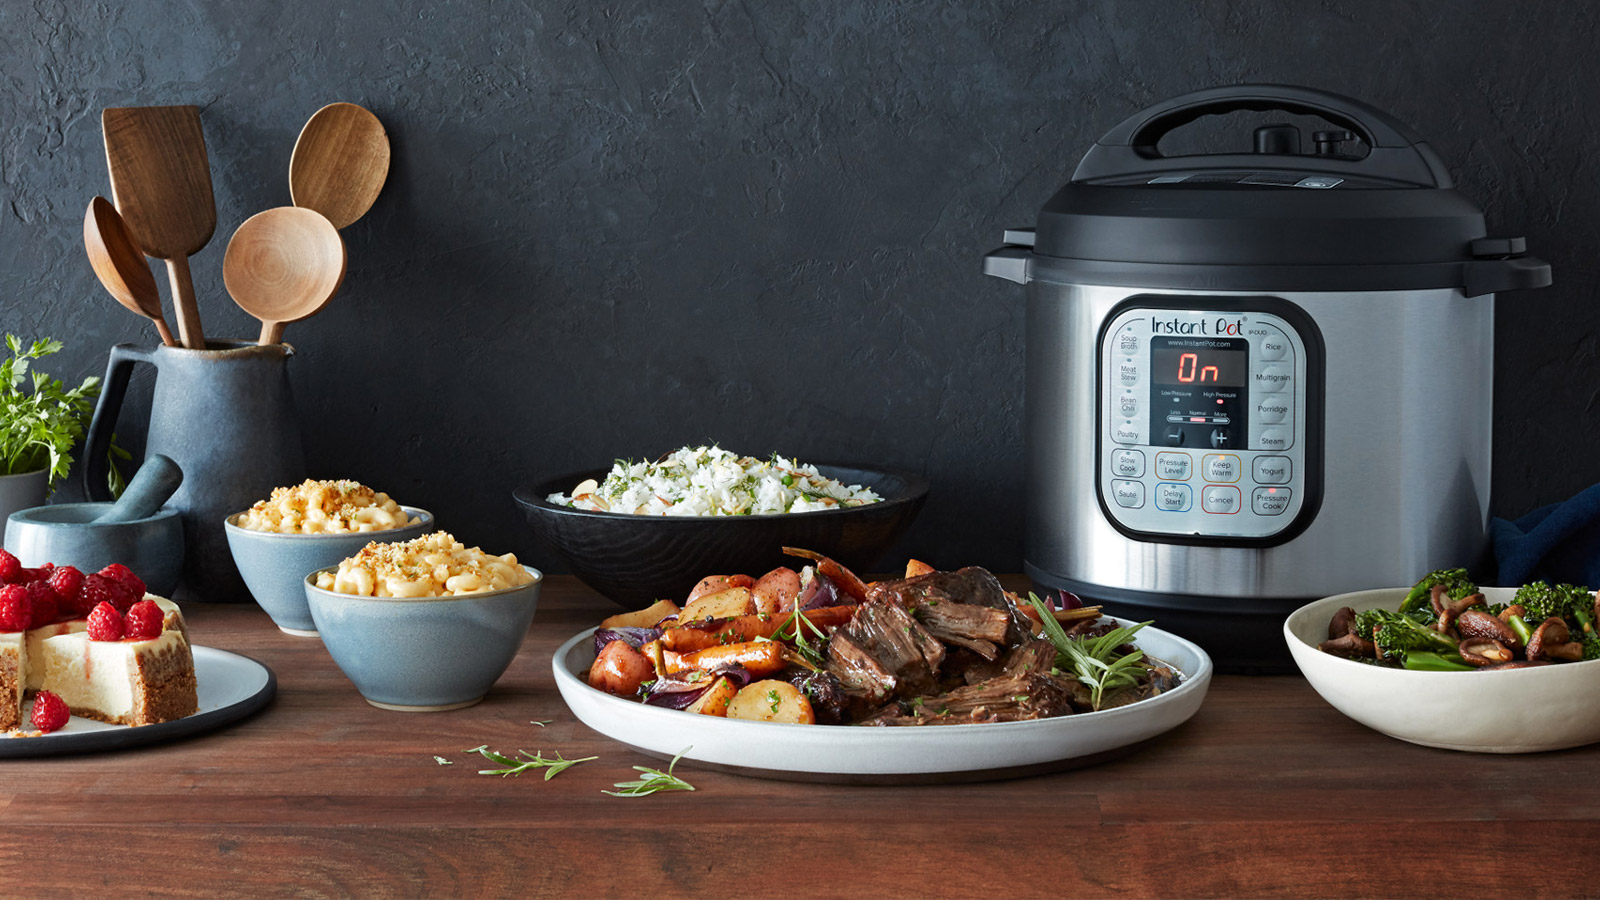 How To Get Smell Out Of Instant Pot 1